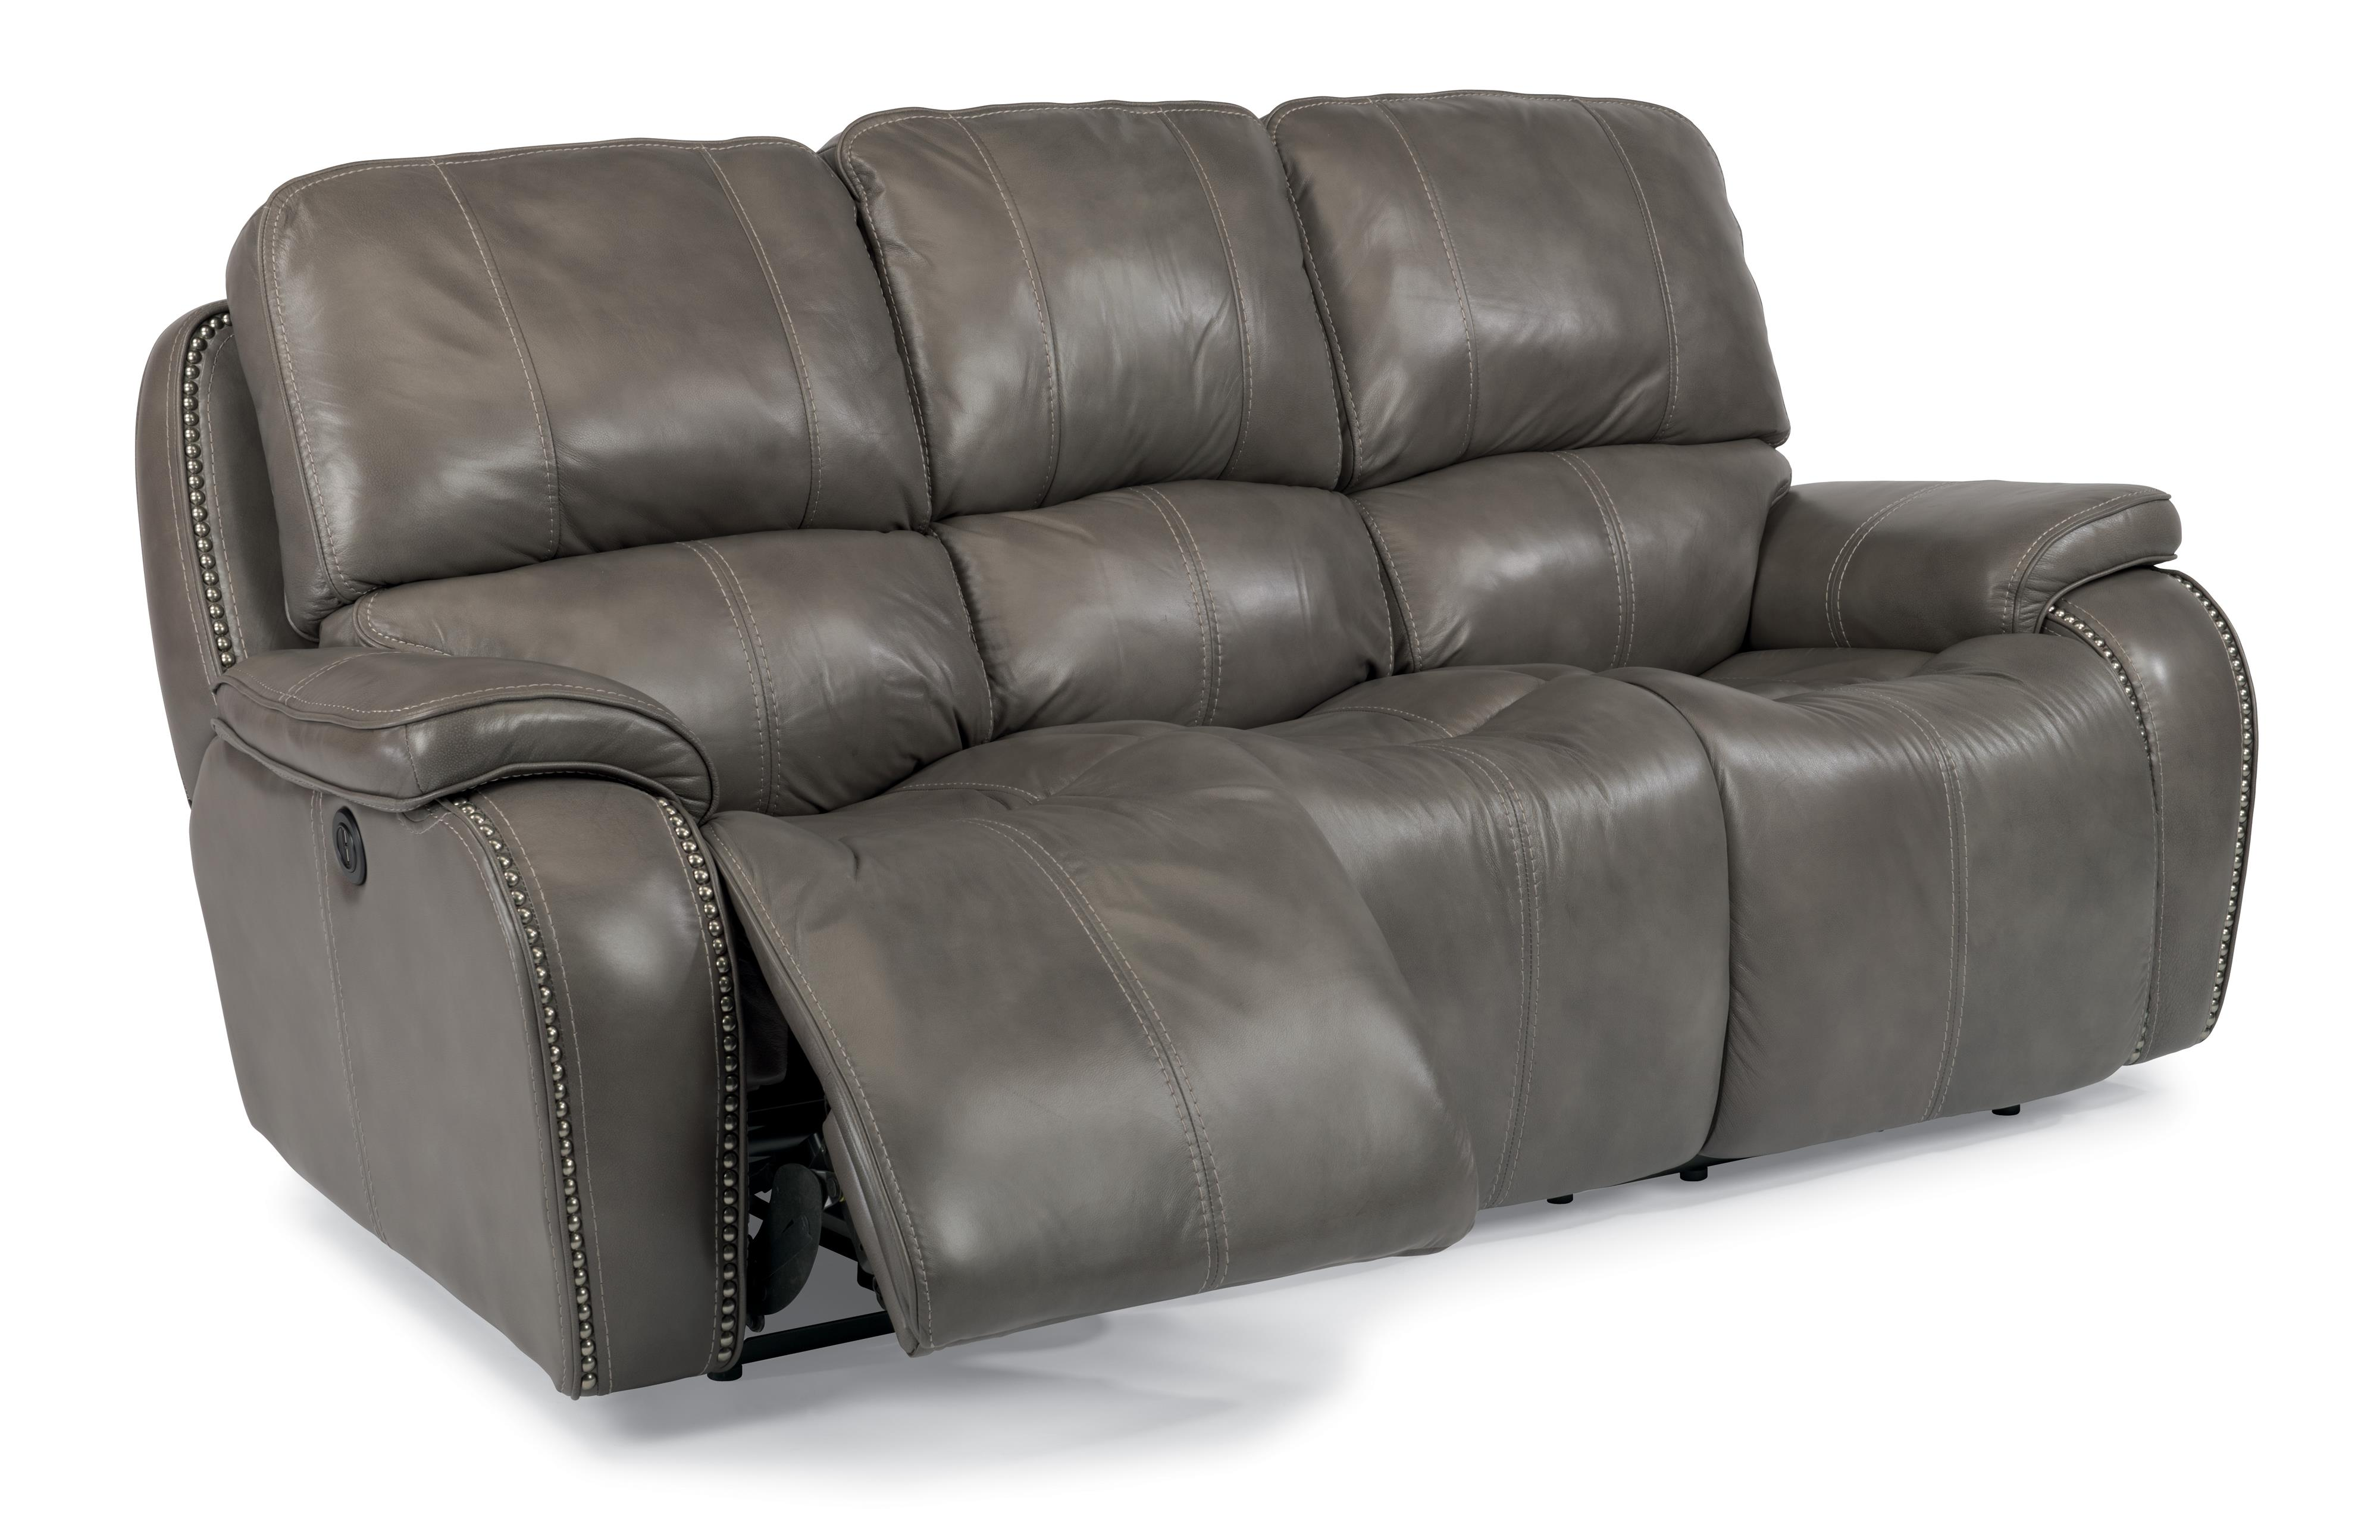 Flexsteel latitudes mackay 1617 62p power reclining sofa for Outdoor furniture mackay